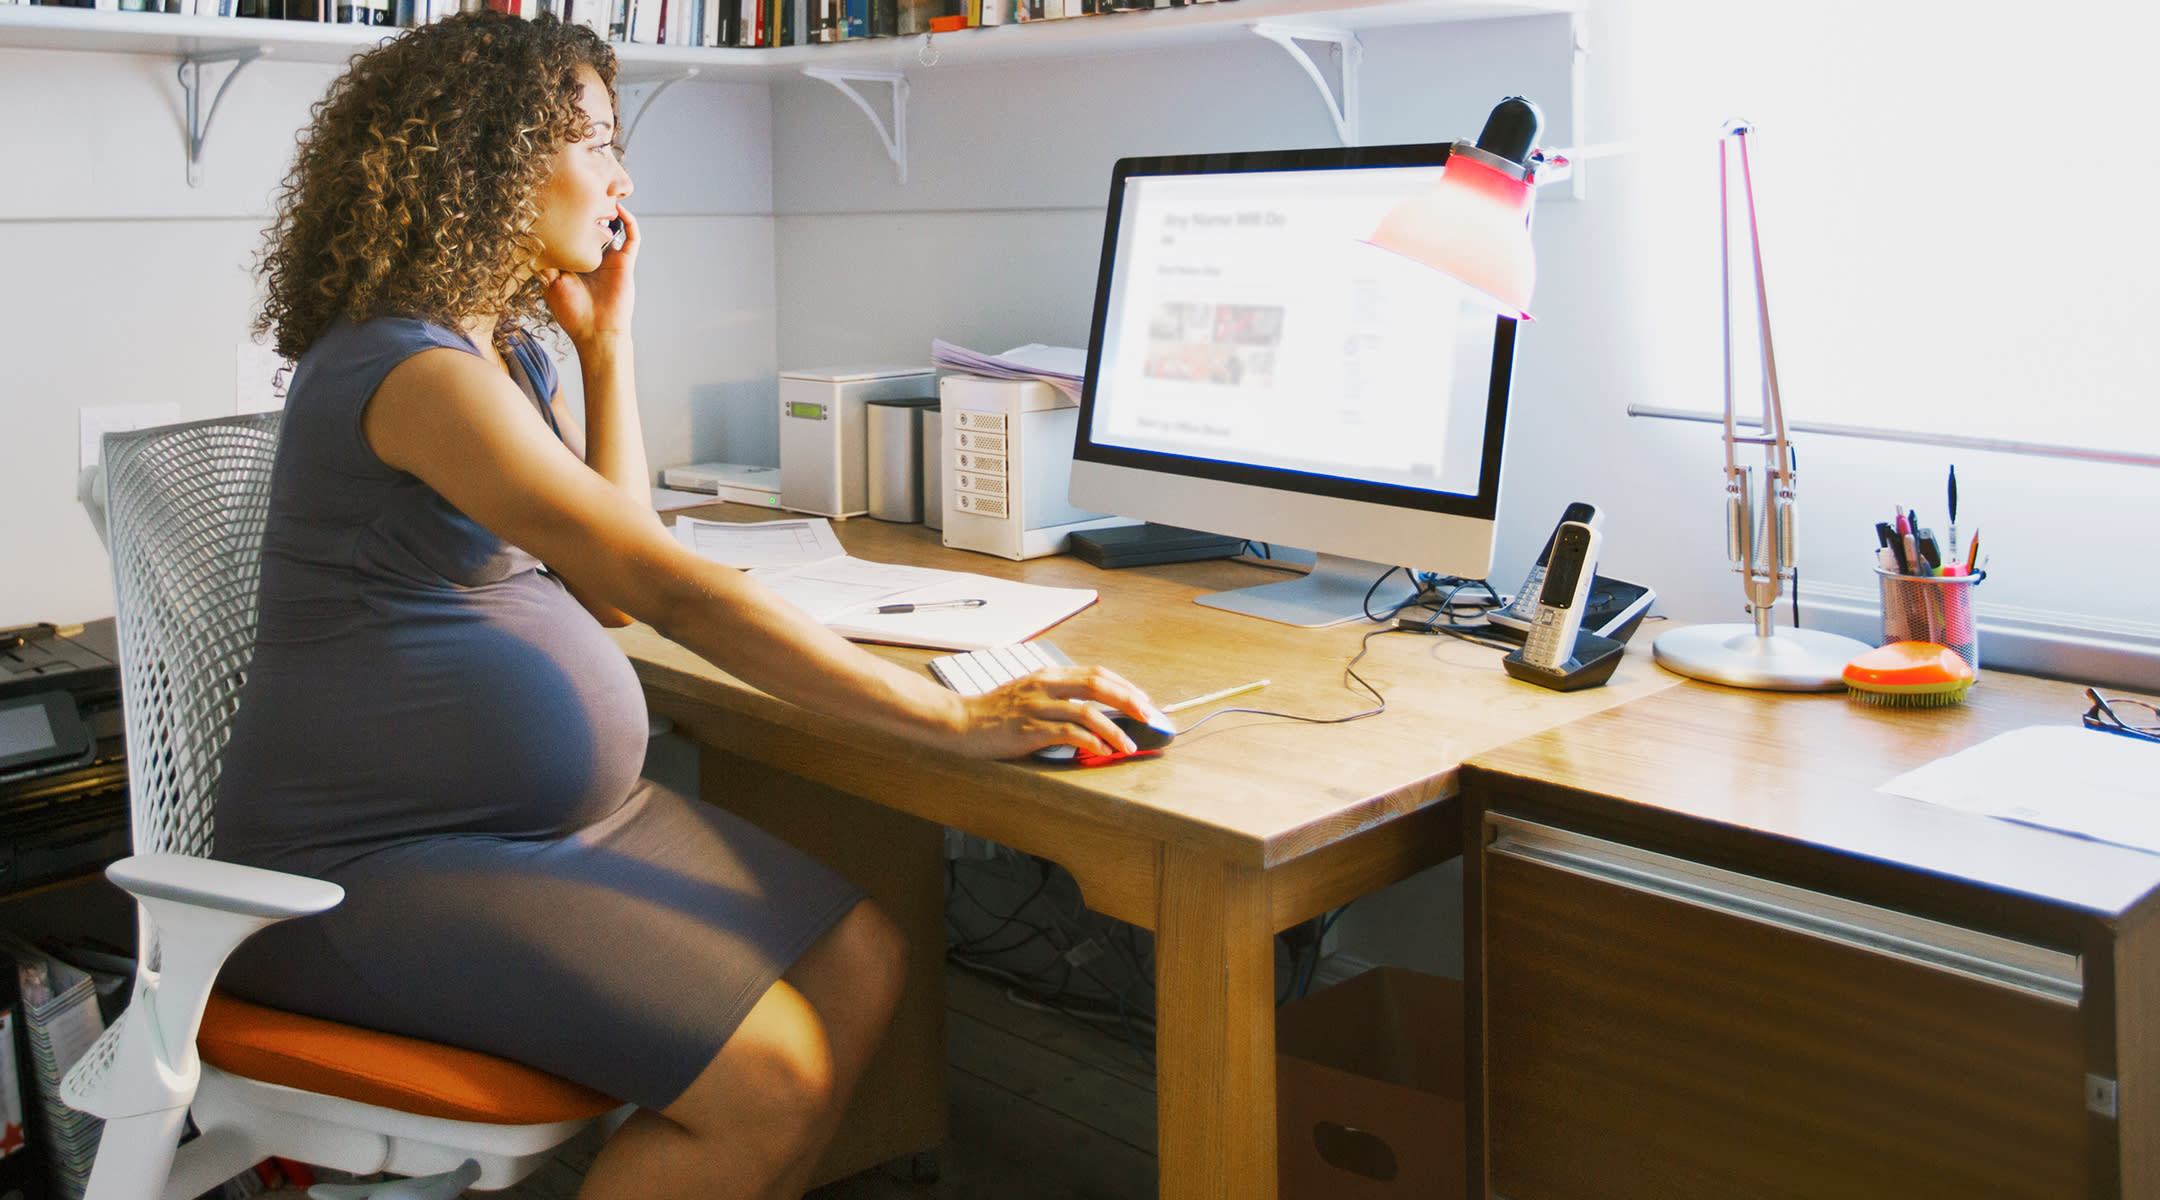 the 10 worst things about being pregnant at work and how to deal 66 percent of women think pregnancy puts their career at risk do you